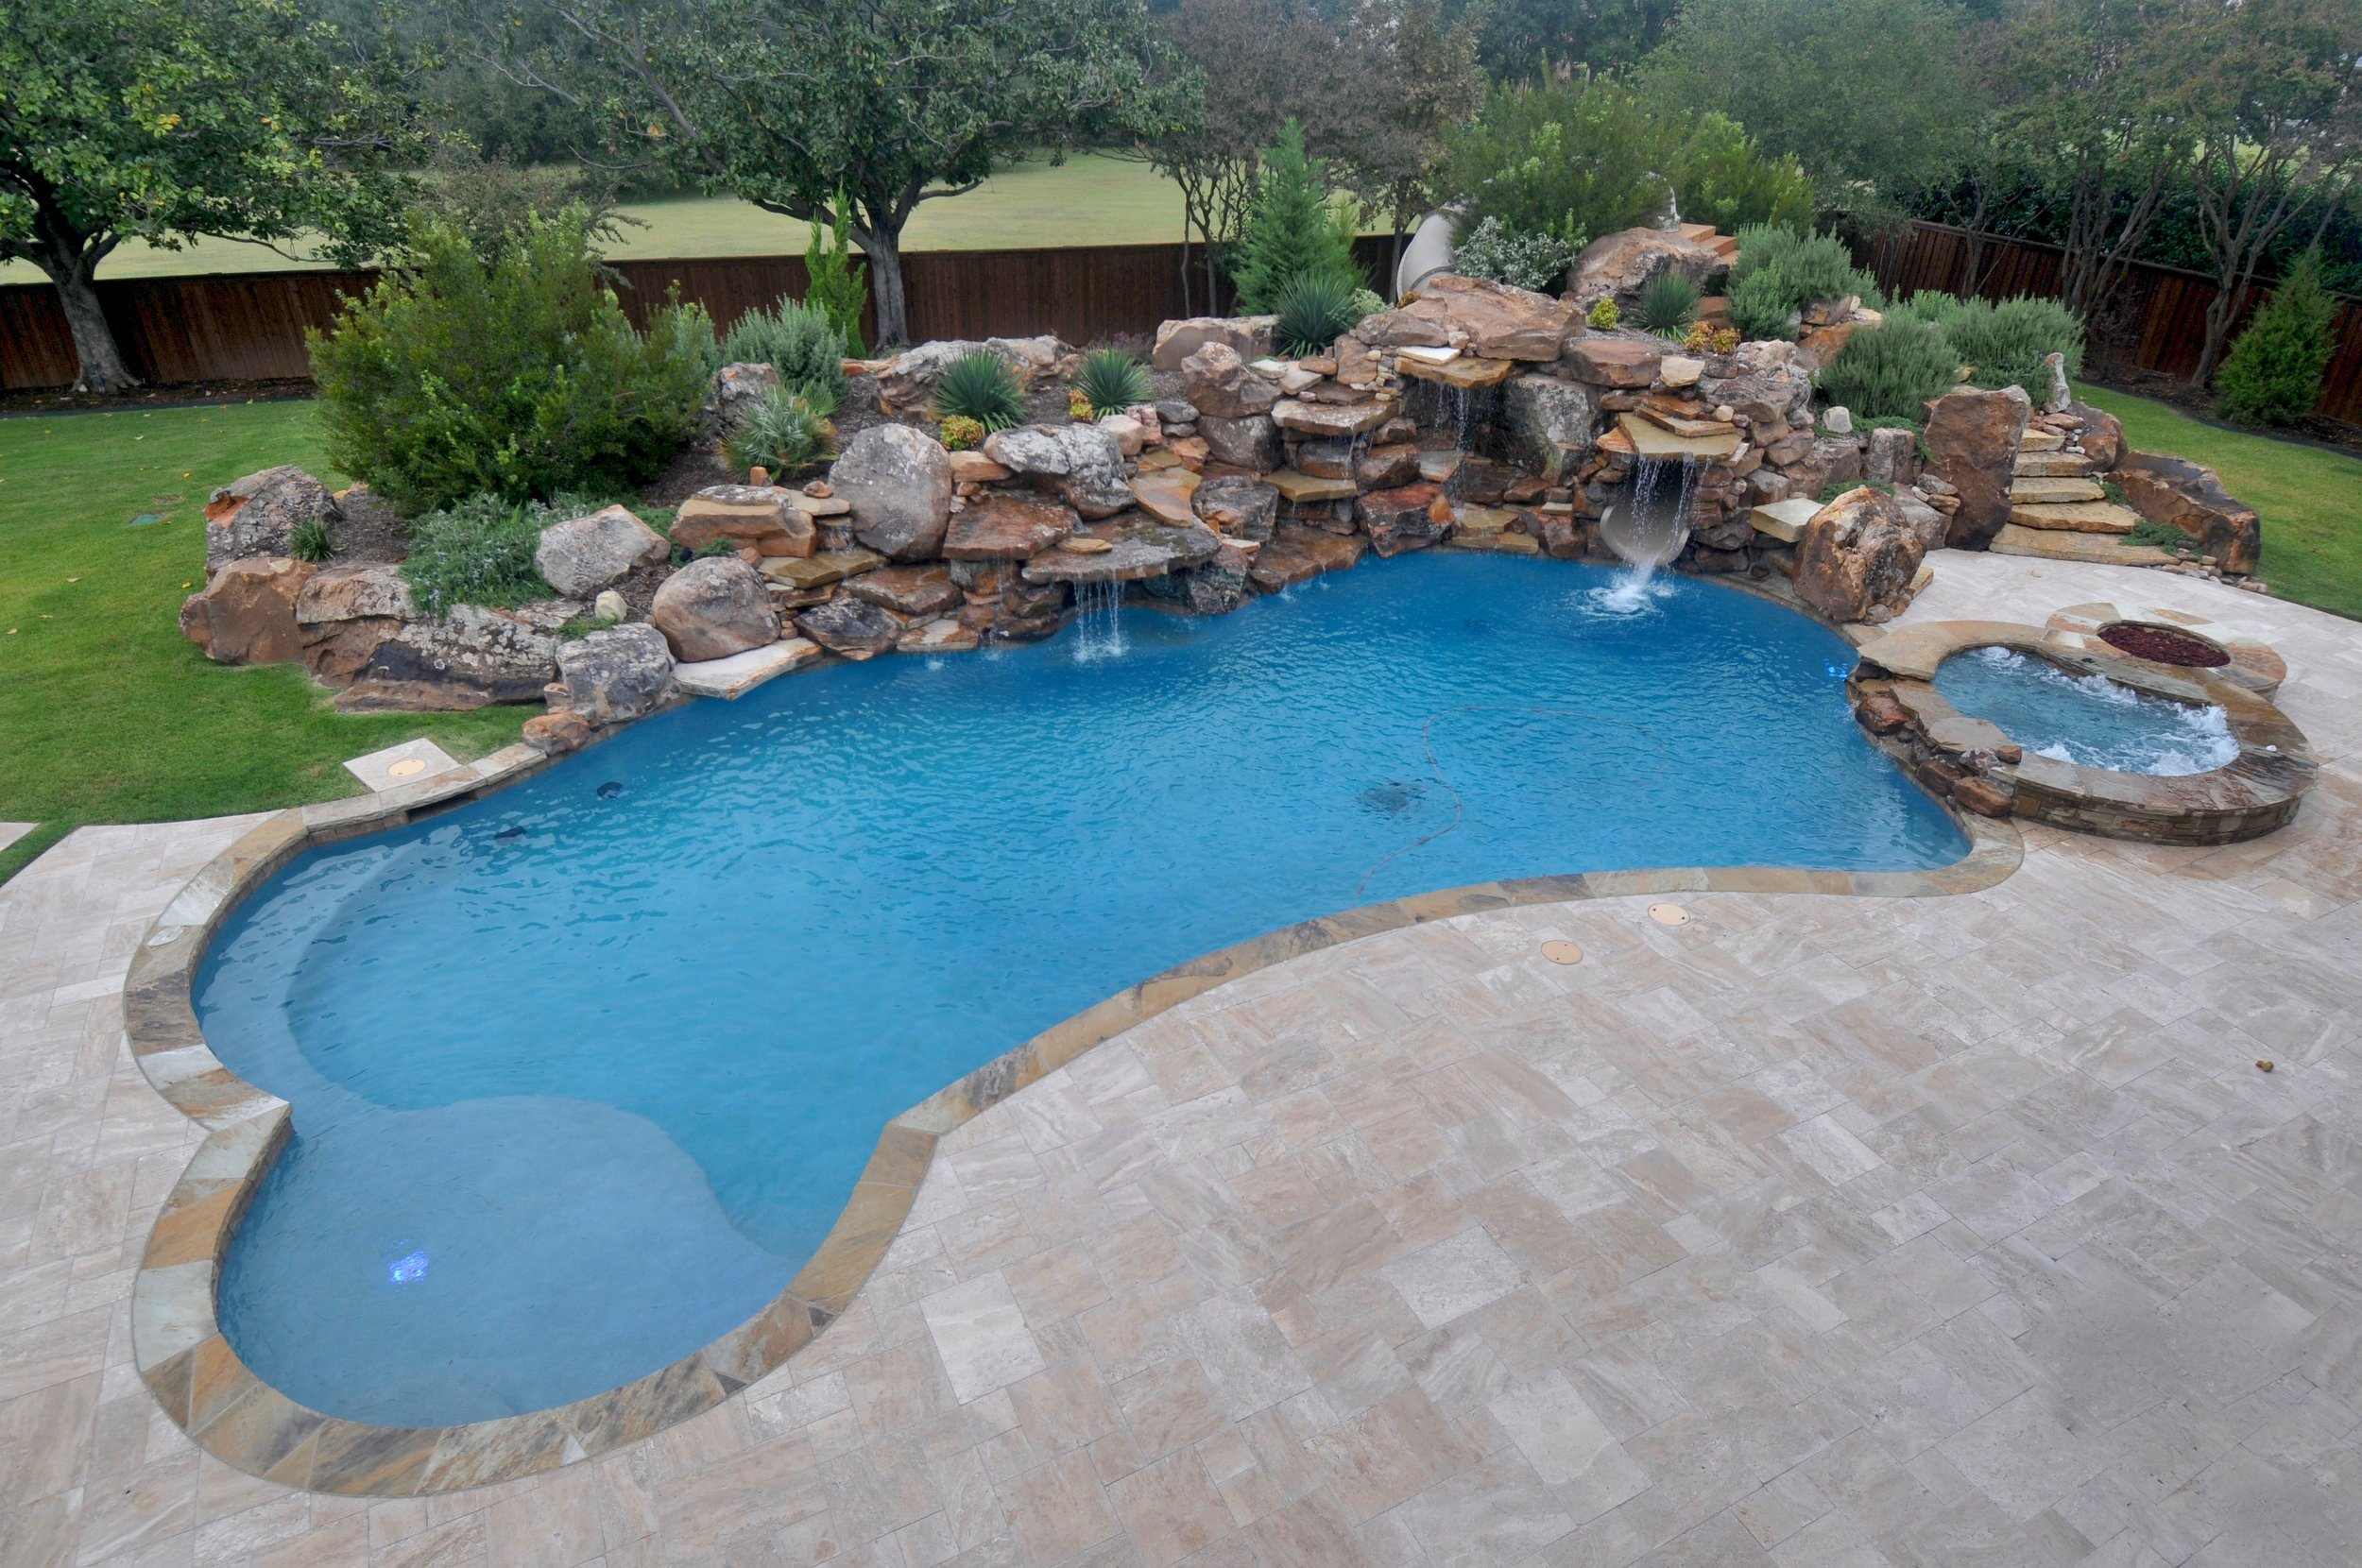 DSC_2223+Adjusted